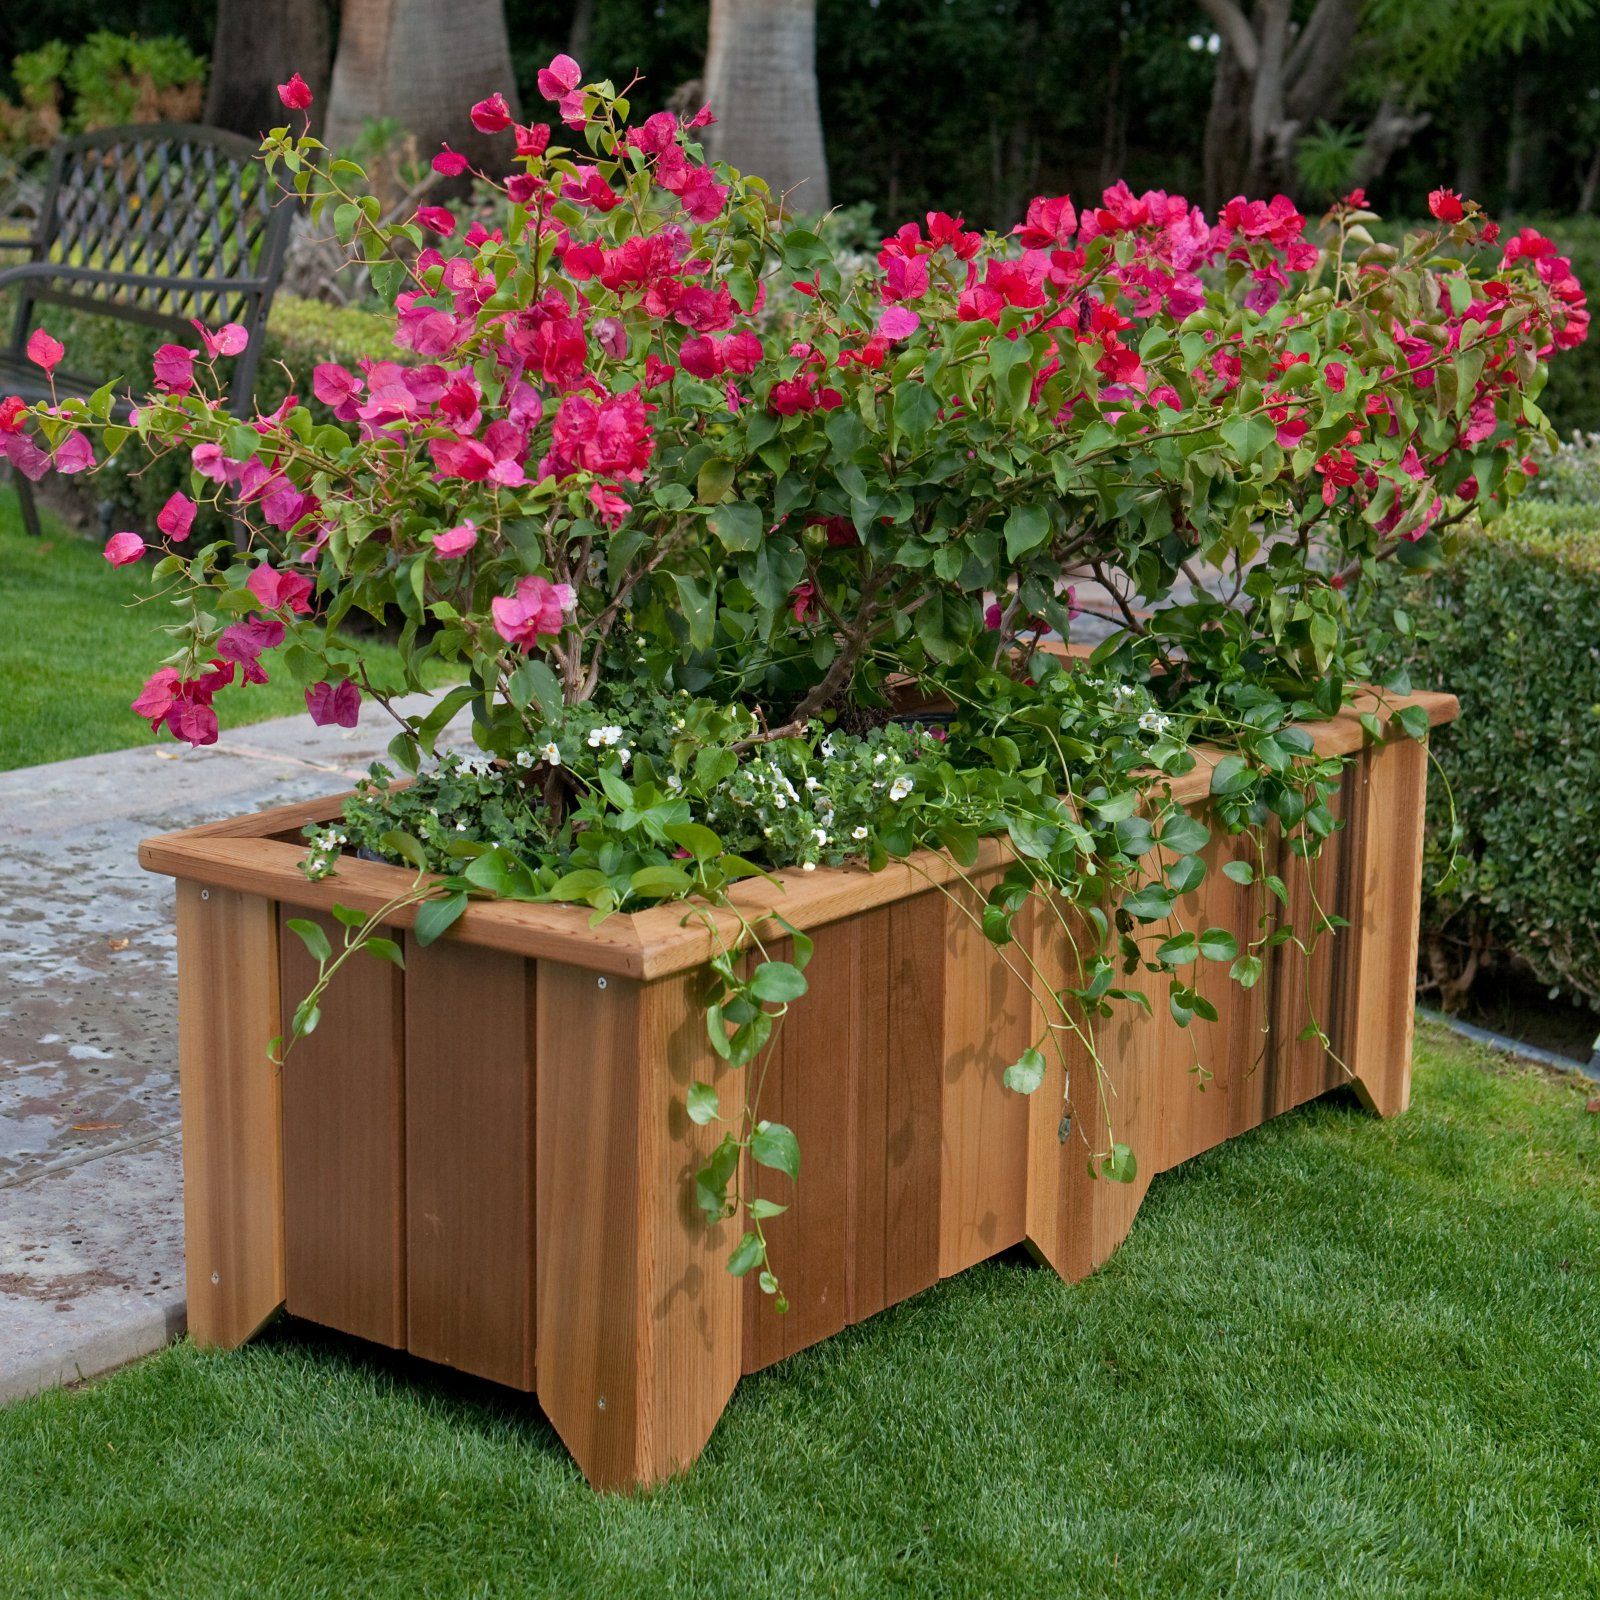 Wood Country Rectangle Cedar Wood Pocatello Planter by Wood Country